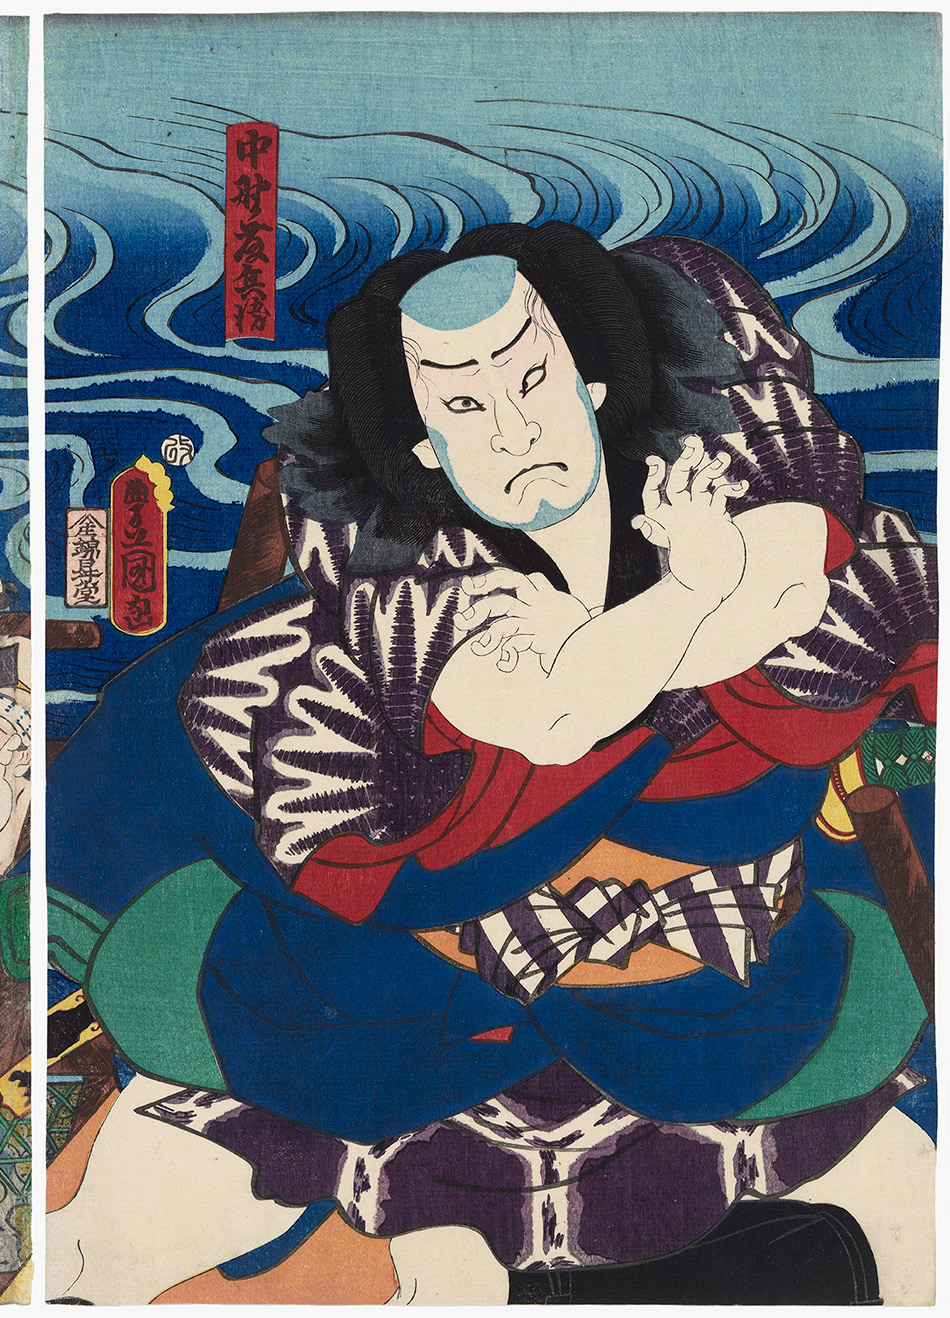 museum-of-fine-arts-boston_14.-Actors-b_Utagawa-Kunisada